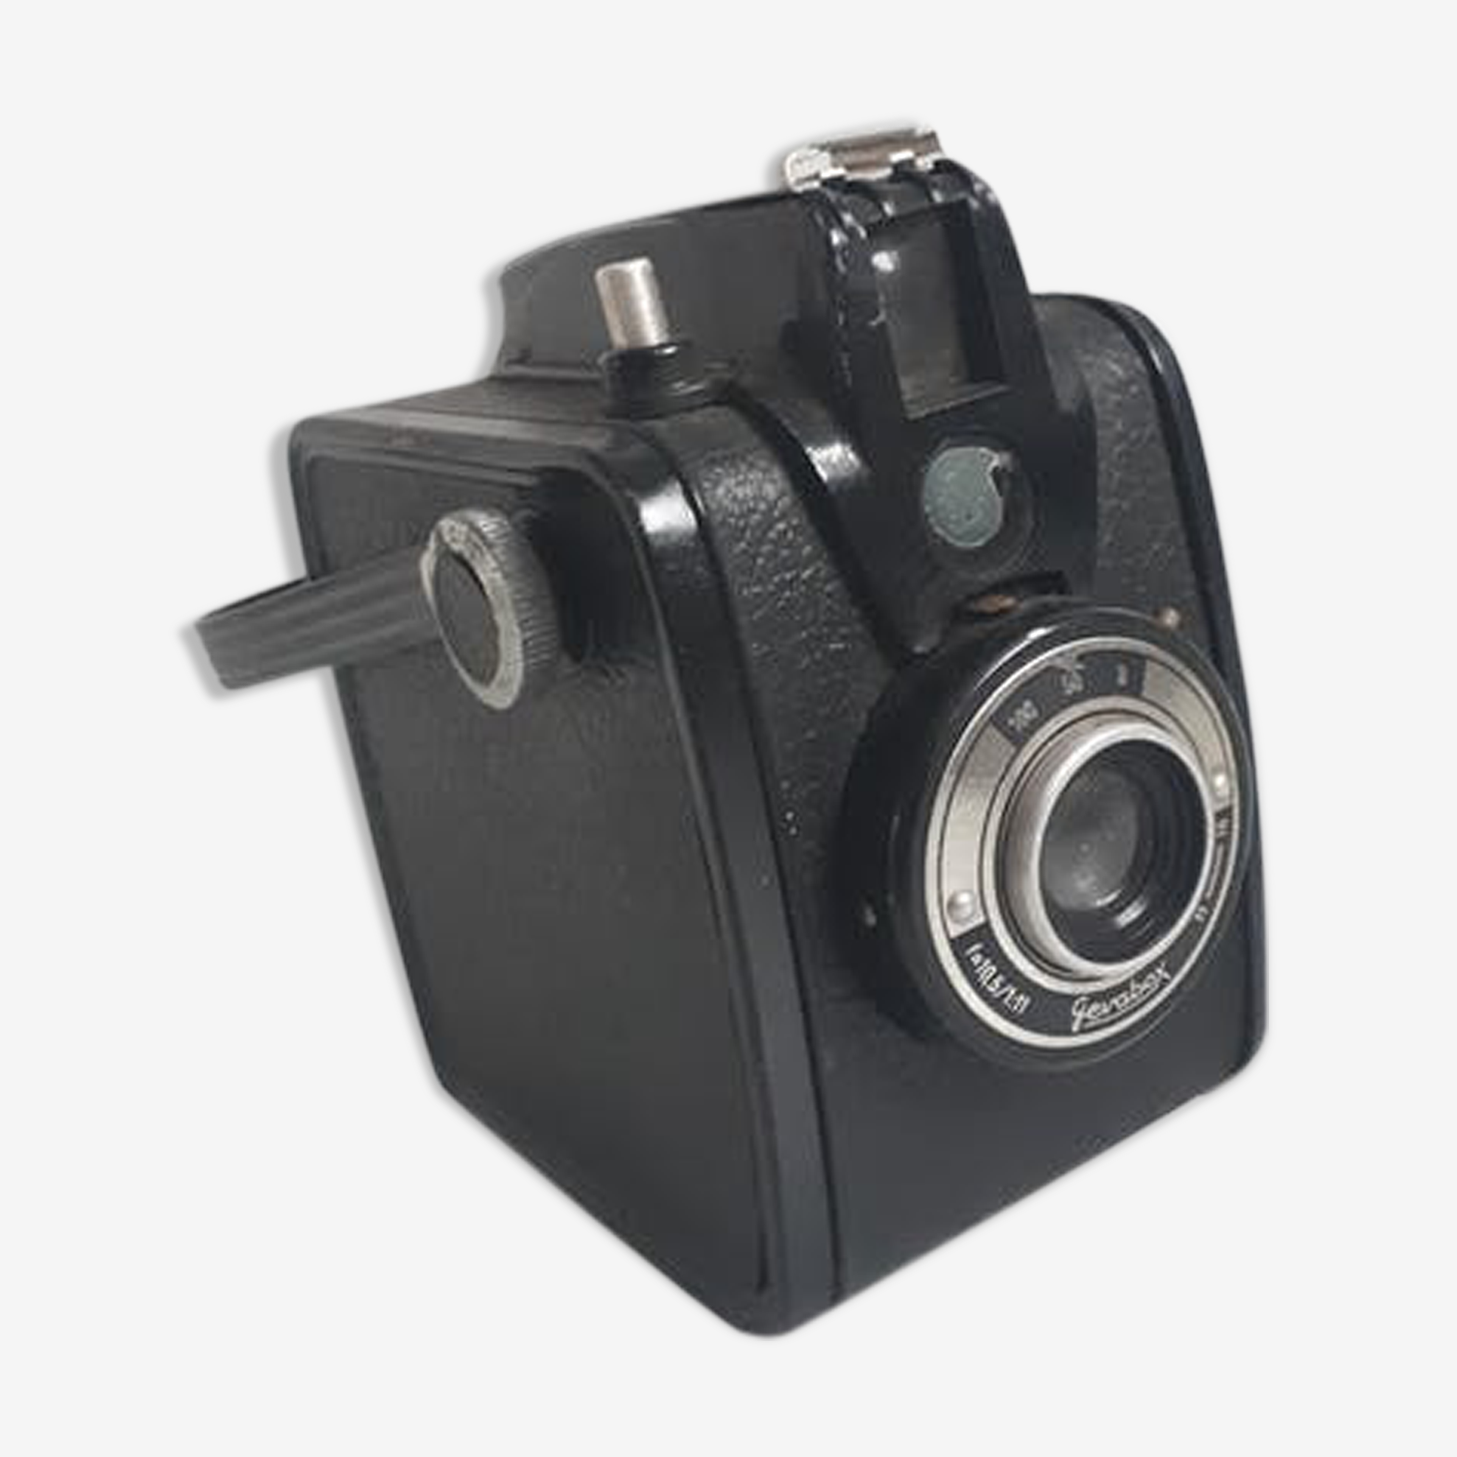 Camera Gevabox 1955